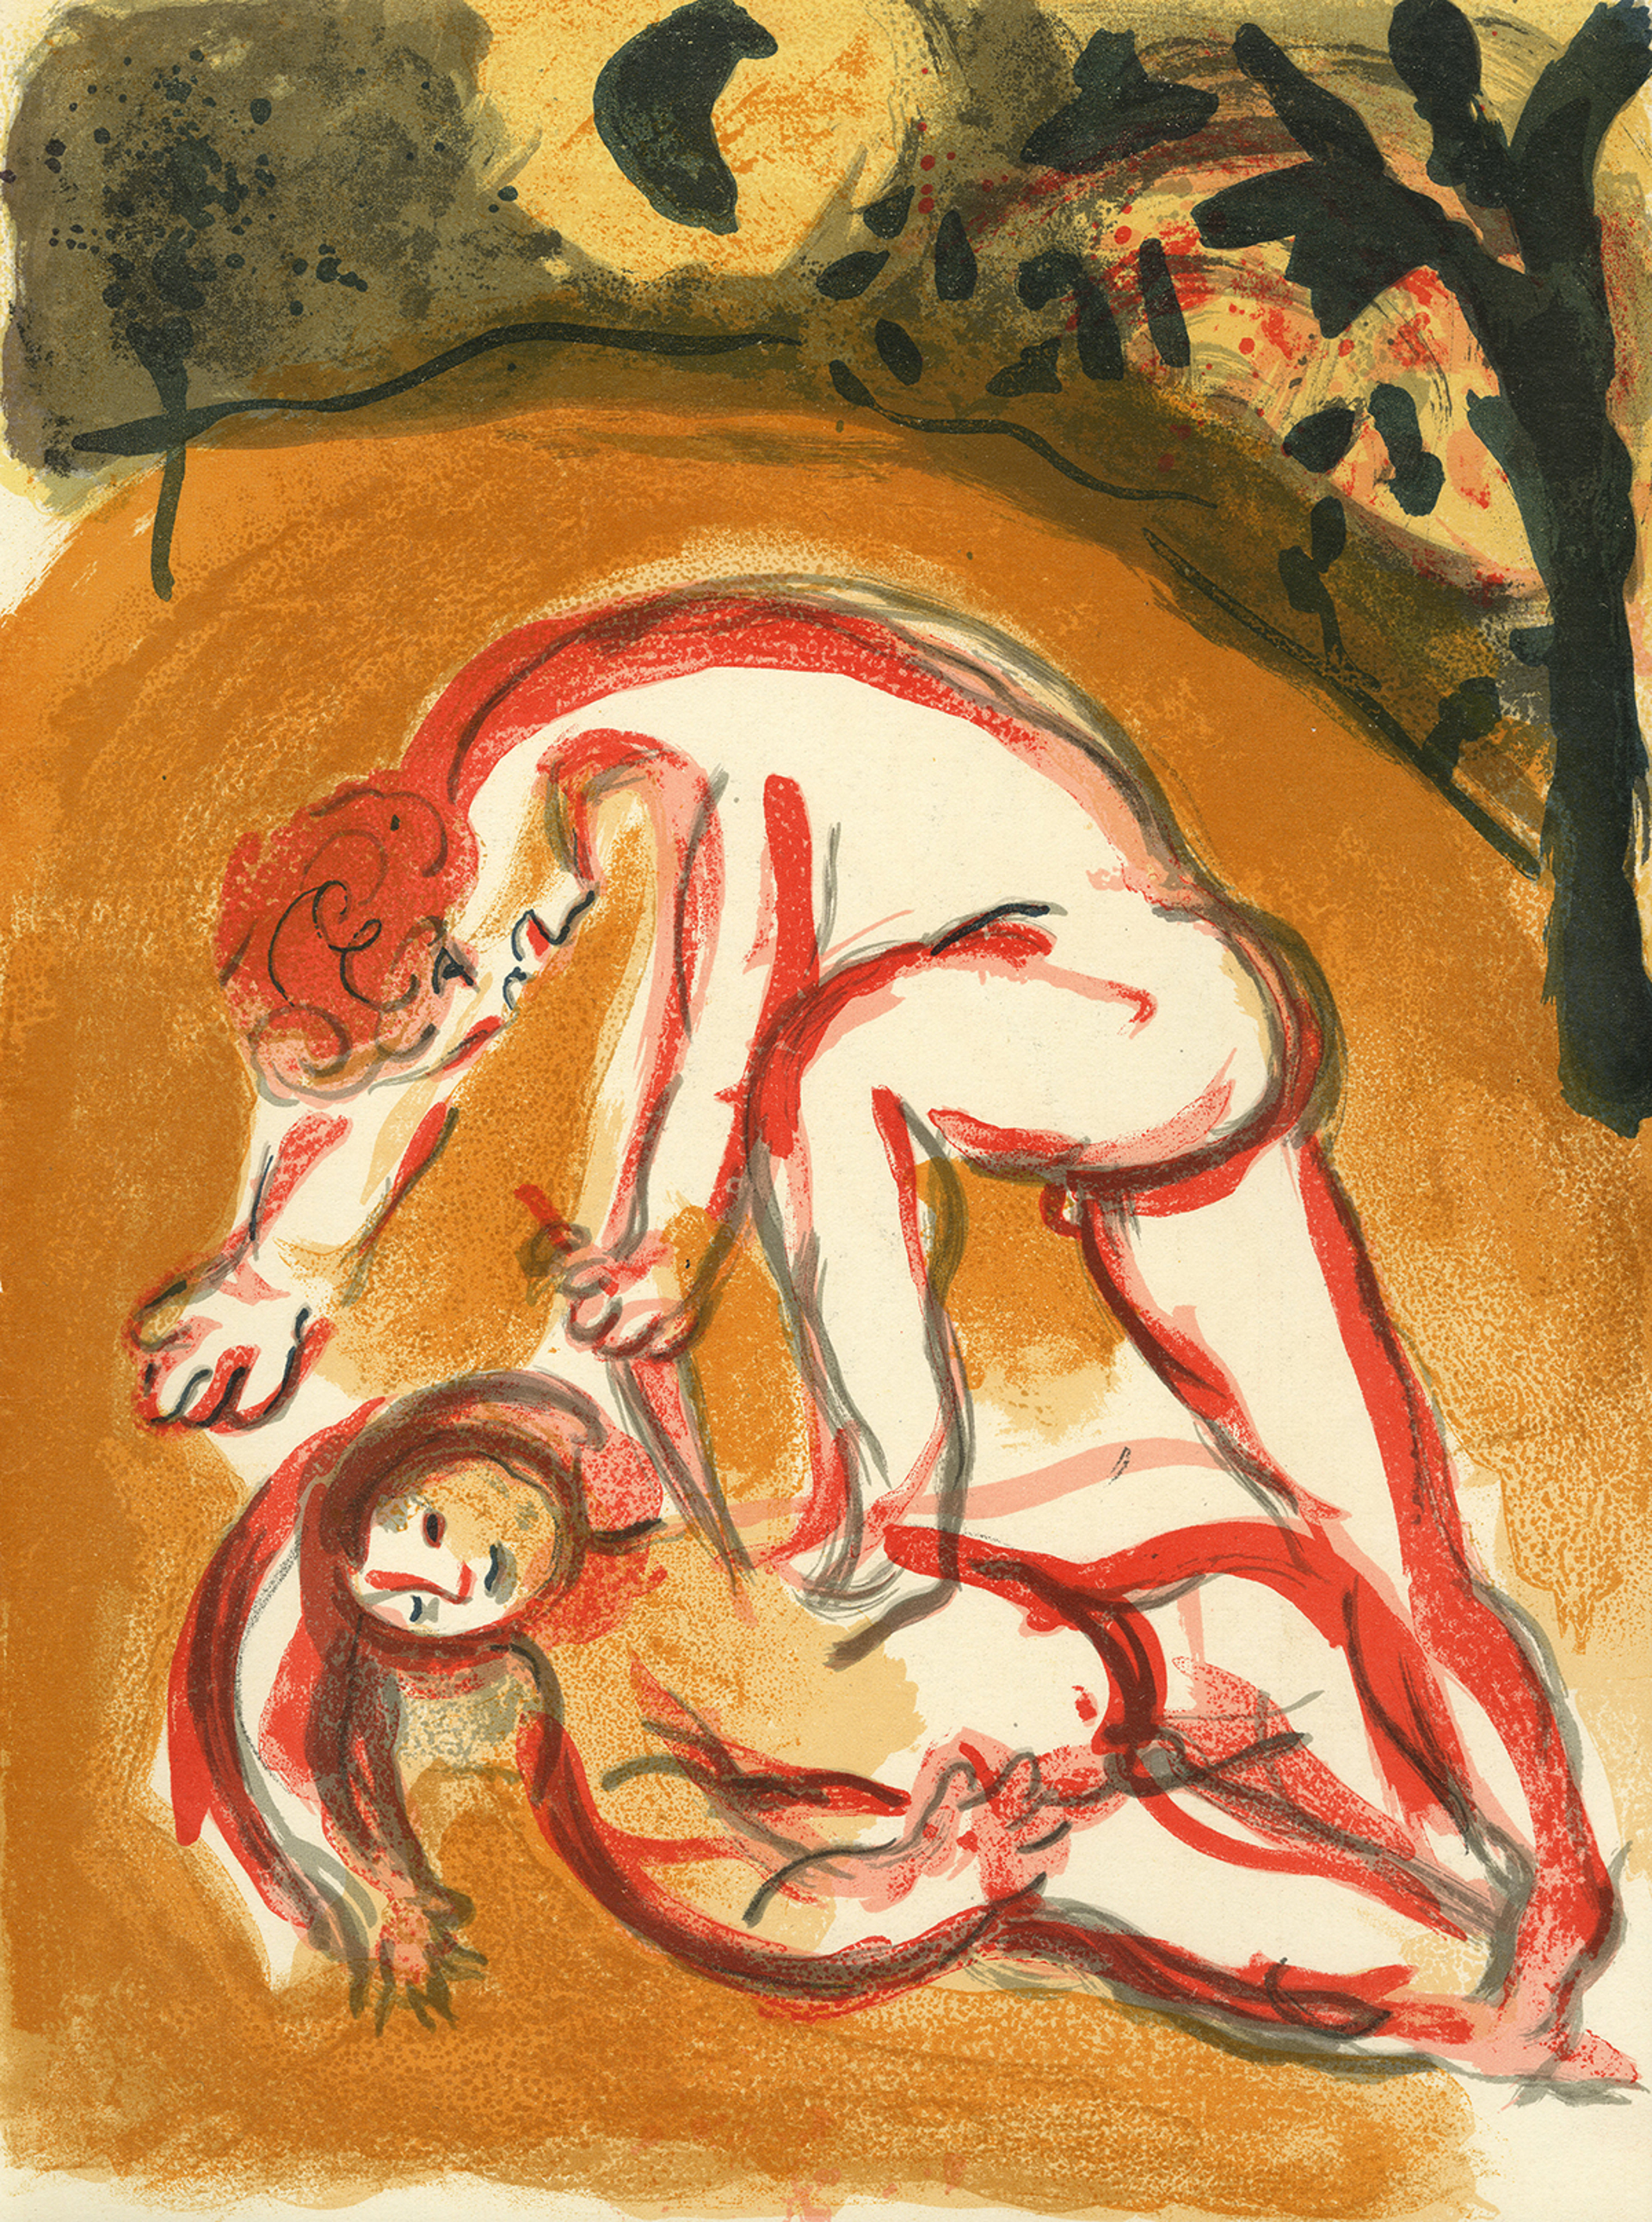 Caïn et Abel (Cain and Abel), M 238/261 by Marc Chagall